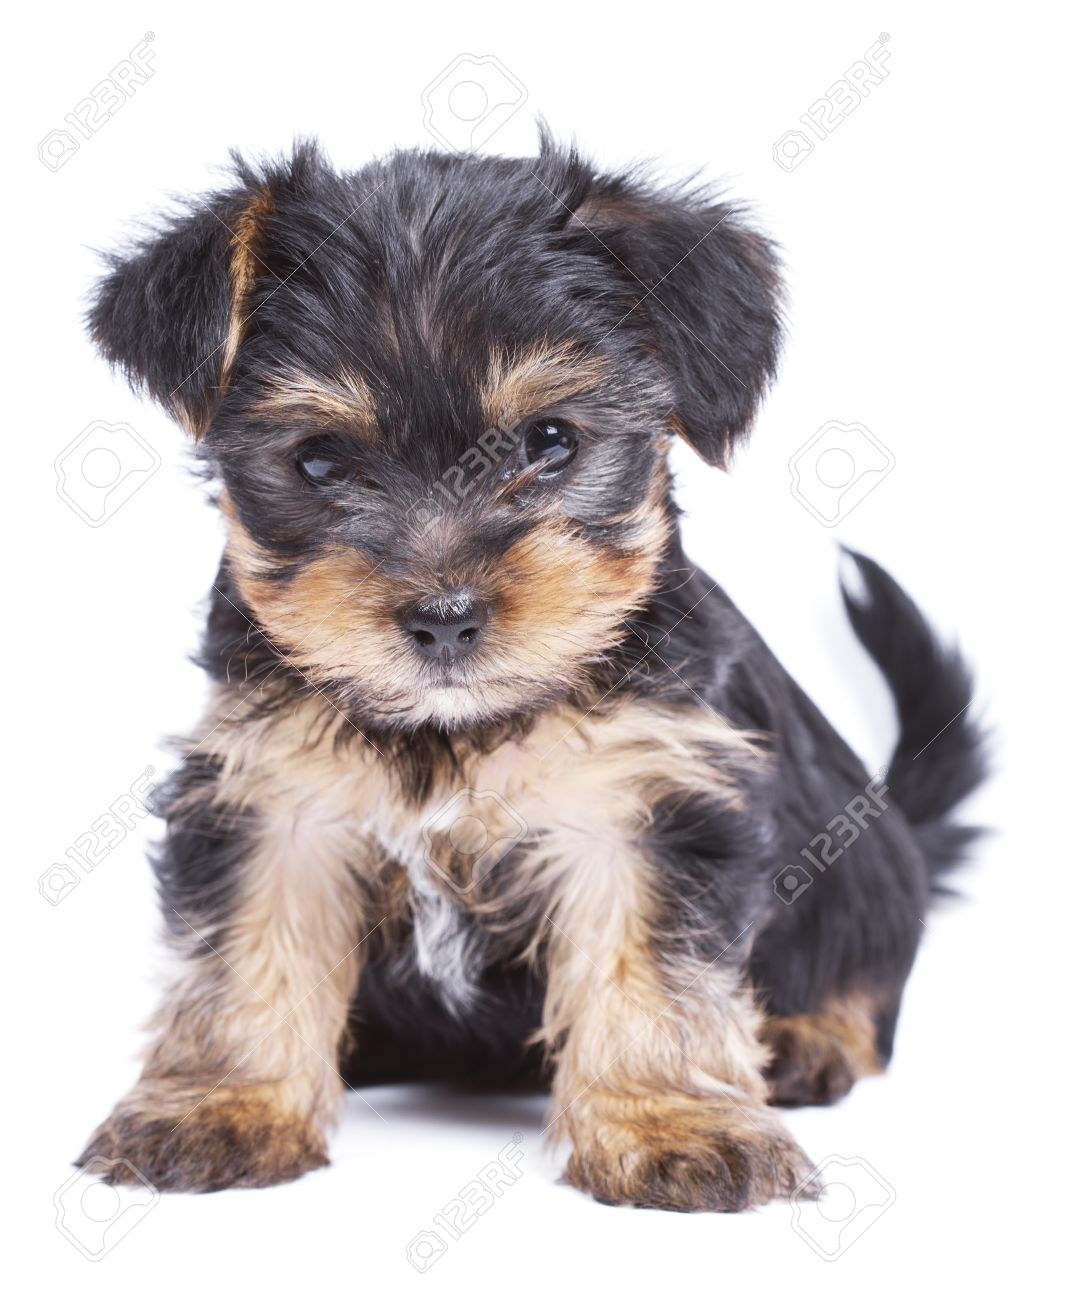 Cute Yorkshire Terrier Puppies Wallpaper | www.imgkid.com ...